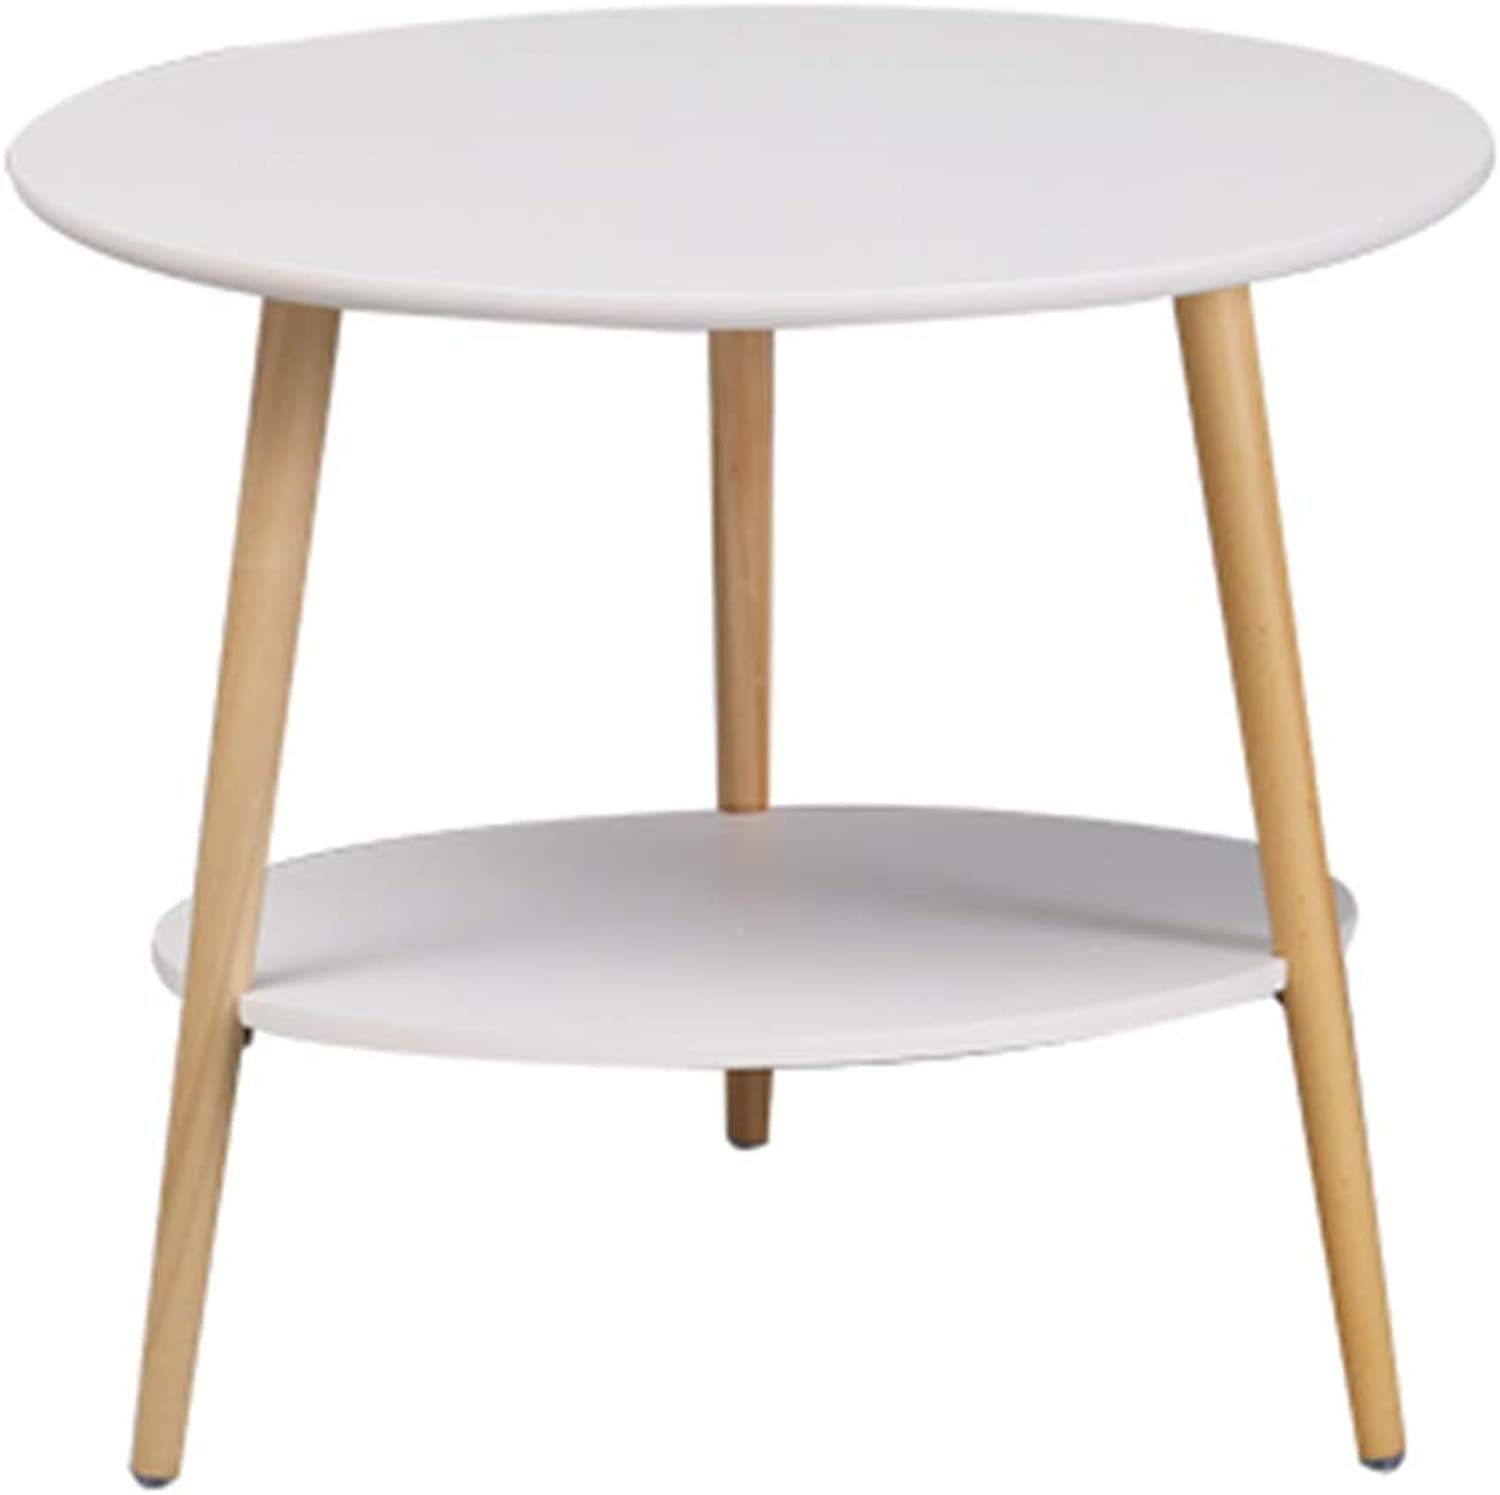 Round Wood Coffee Table Simple White Double Layer Modern Side Table Creative Balcony Window Living Room End Tables